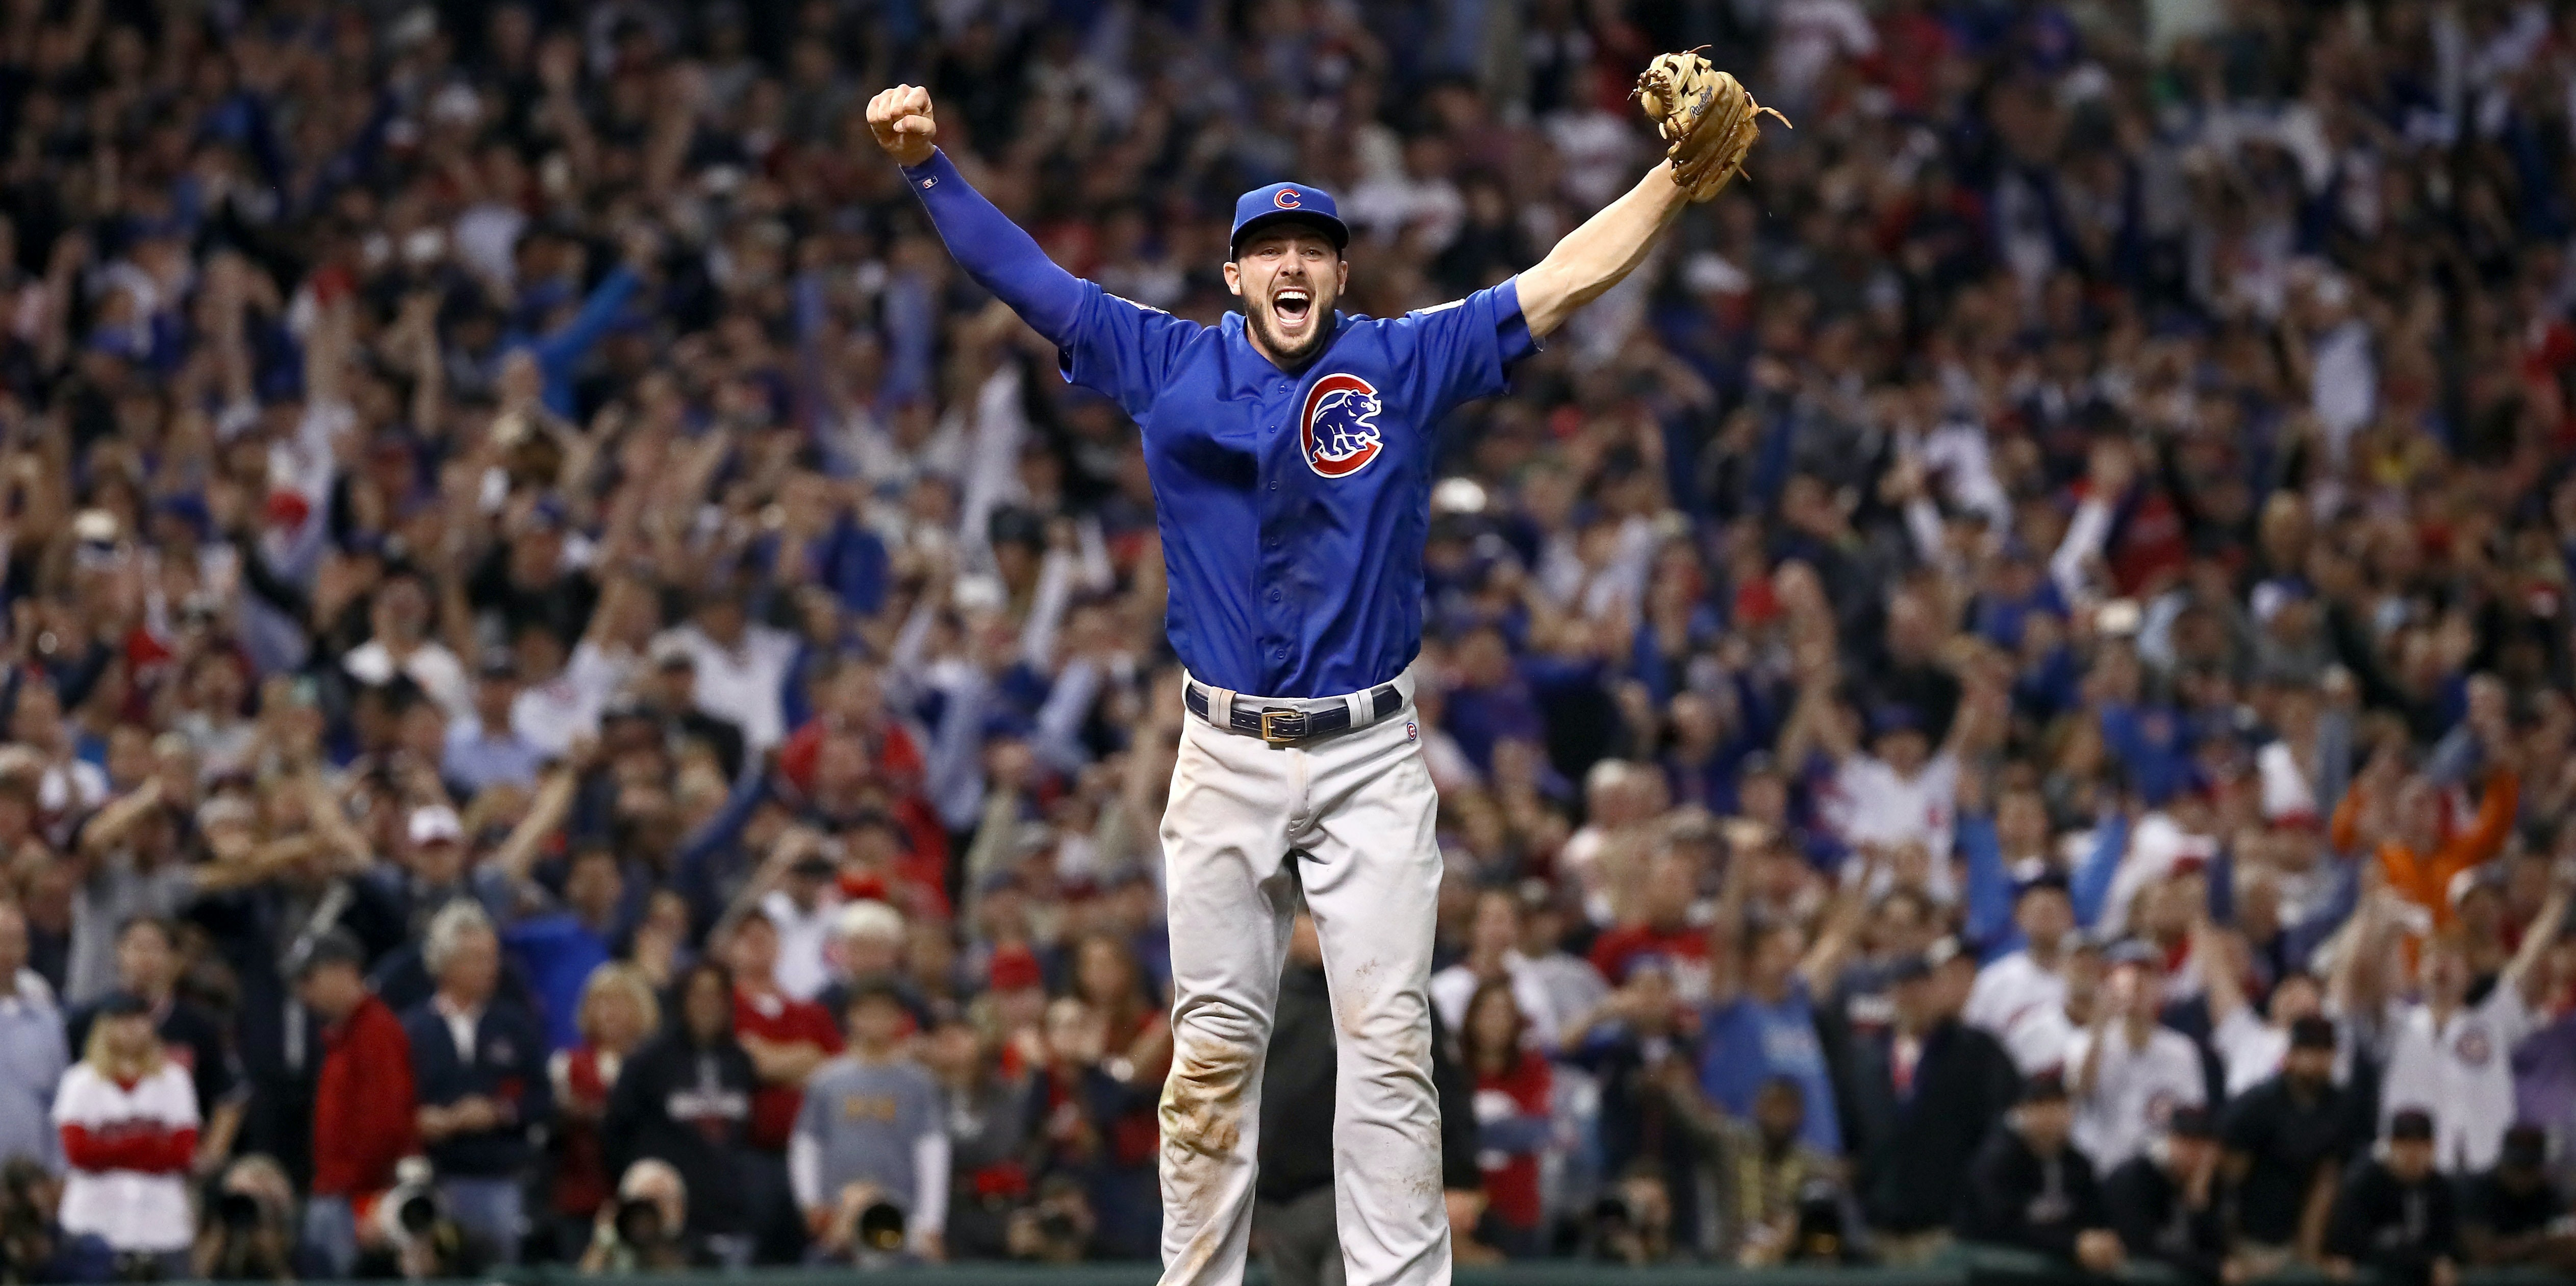 The Chicago Cubs' Kris Bryant performed extraordinarily well in meaningless game situations in 2016.